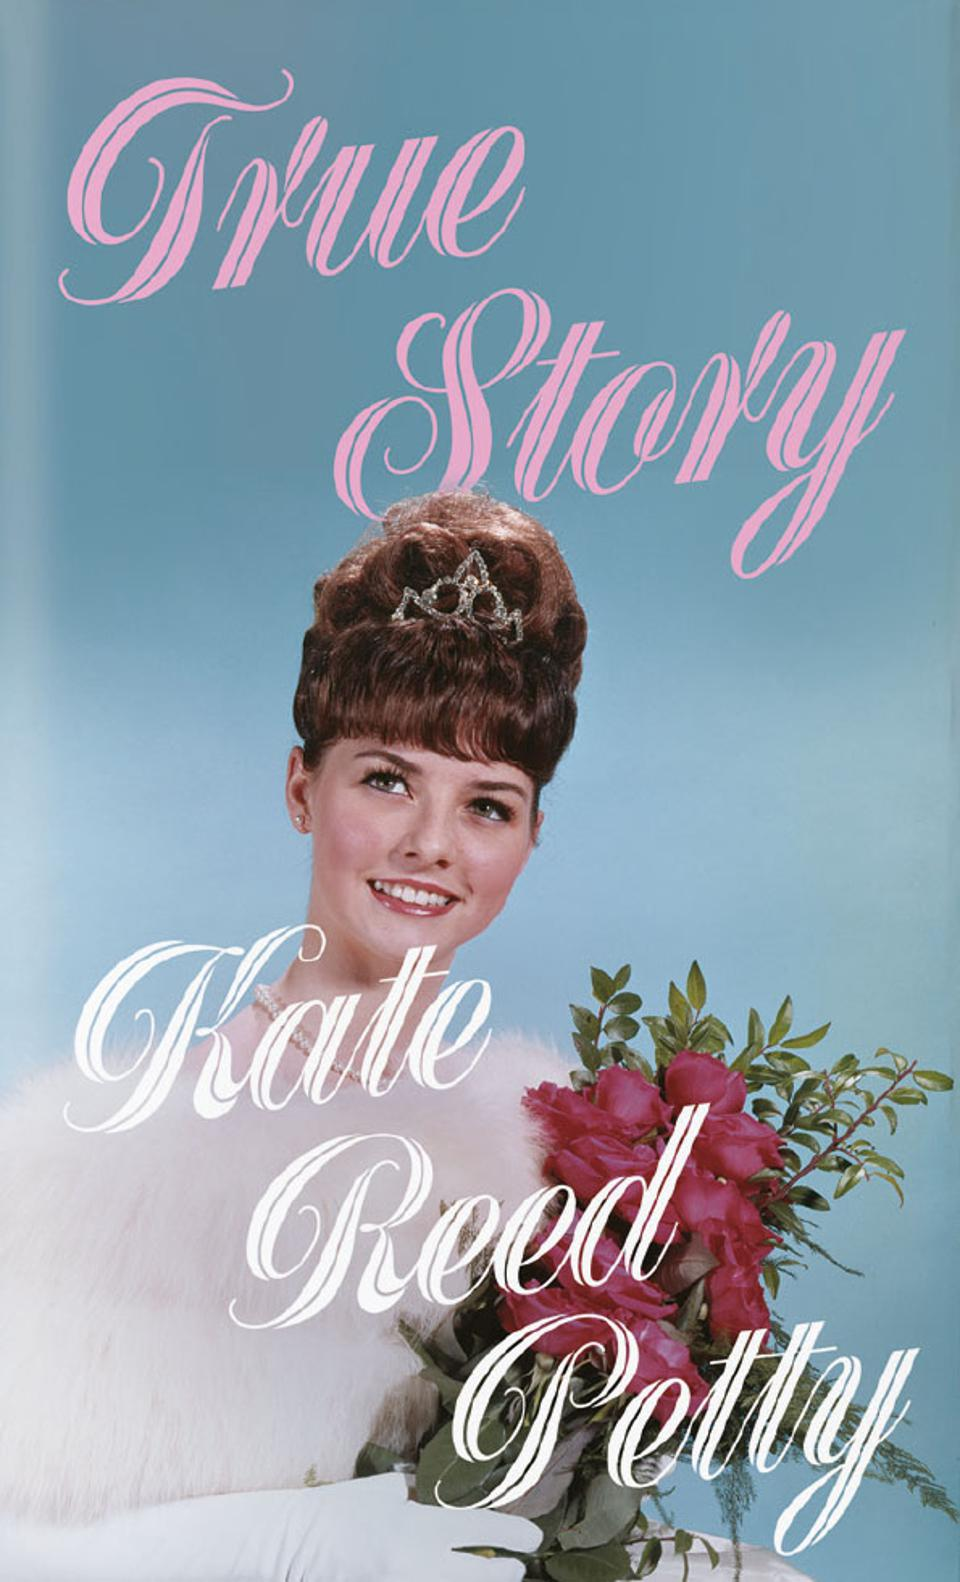 true story prom kate reed petty novel blue background book cover uk publisher riverrun